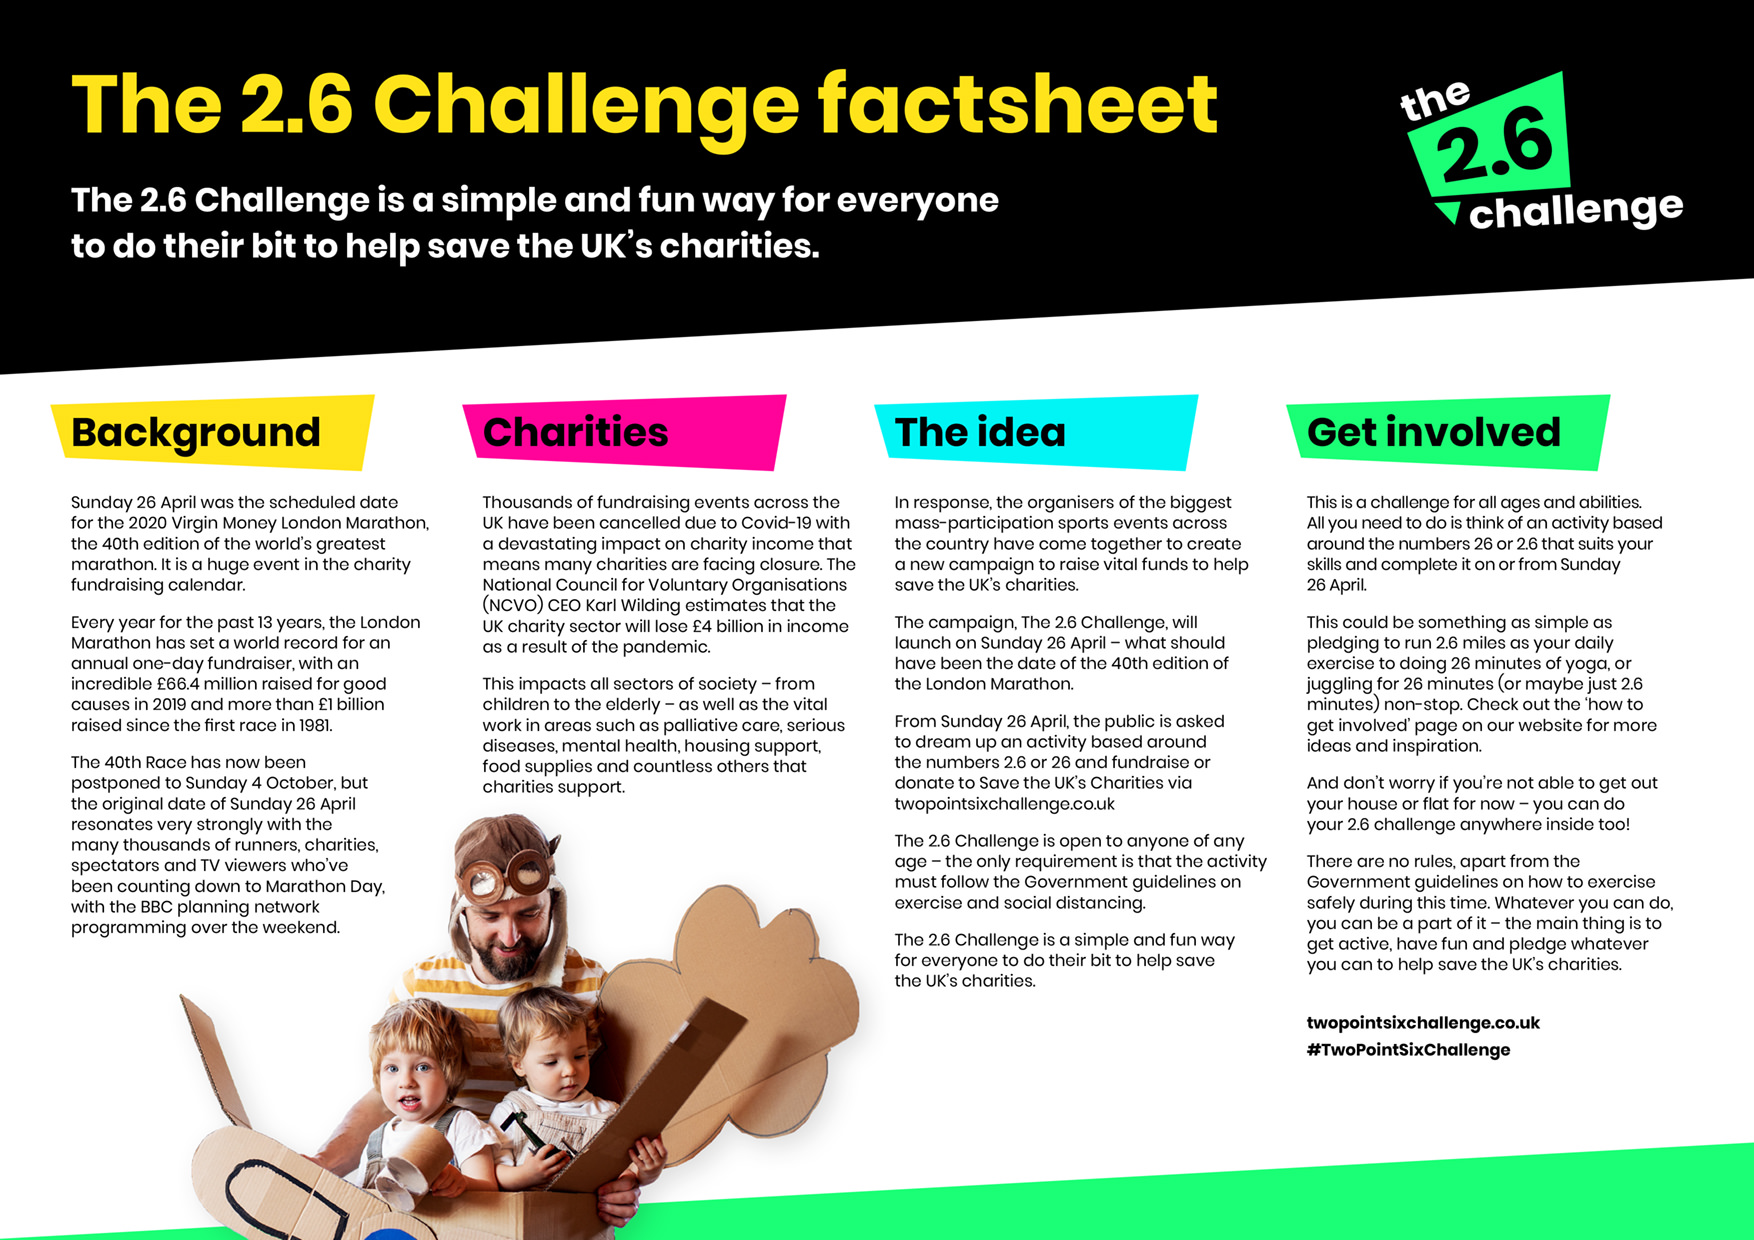 The 2.6 Challenge factsheet